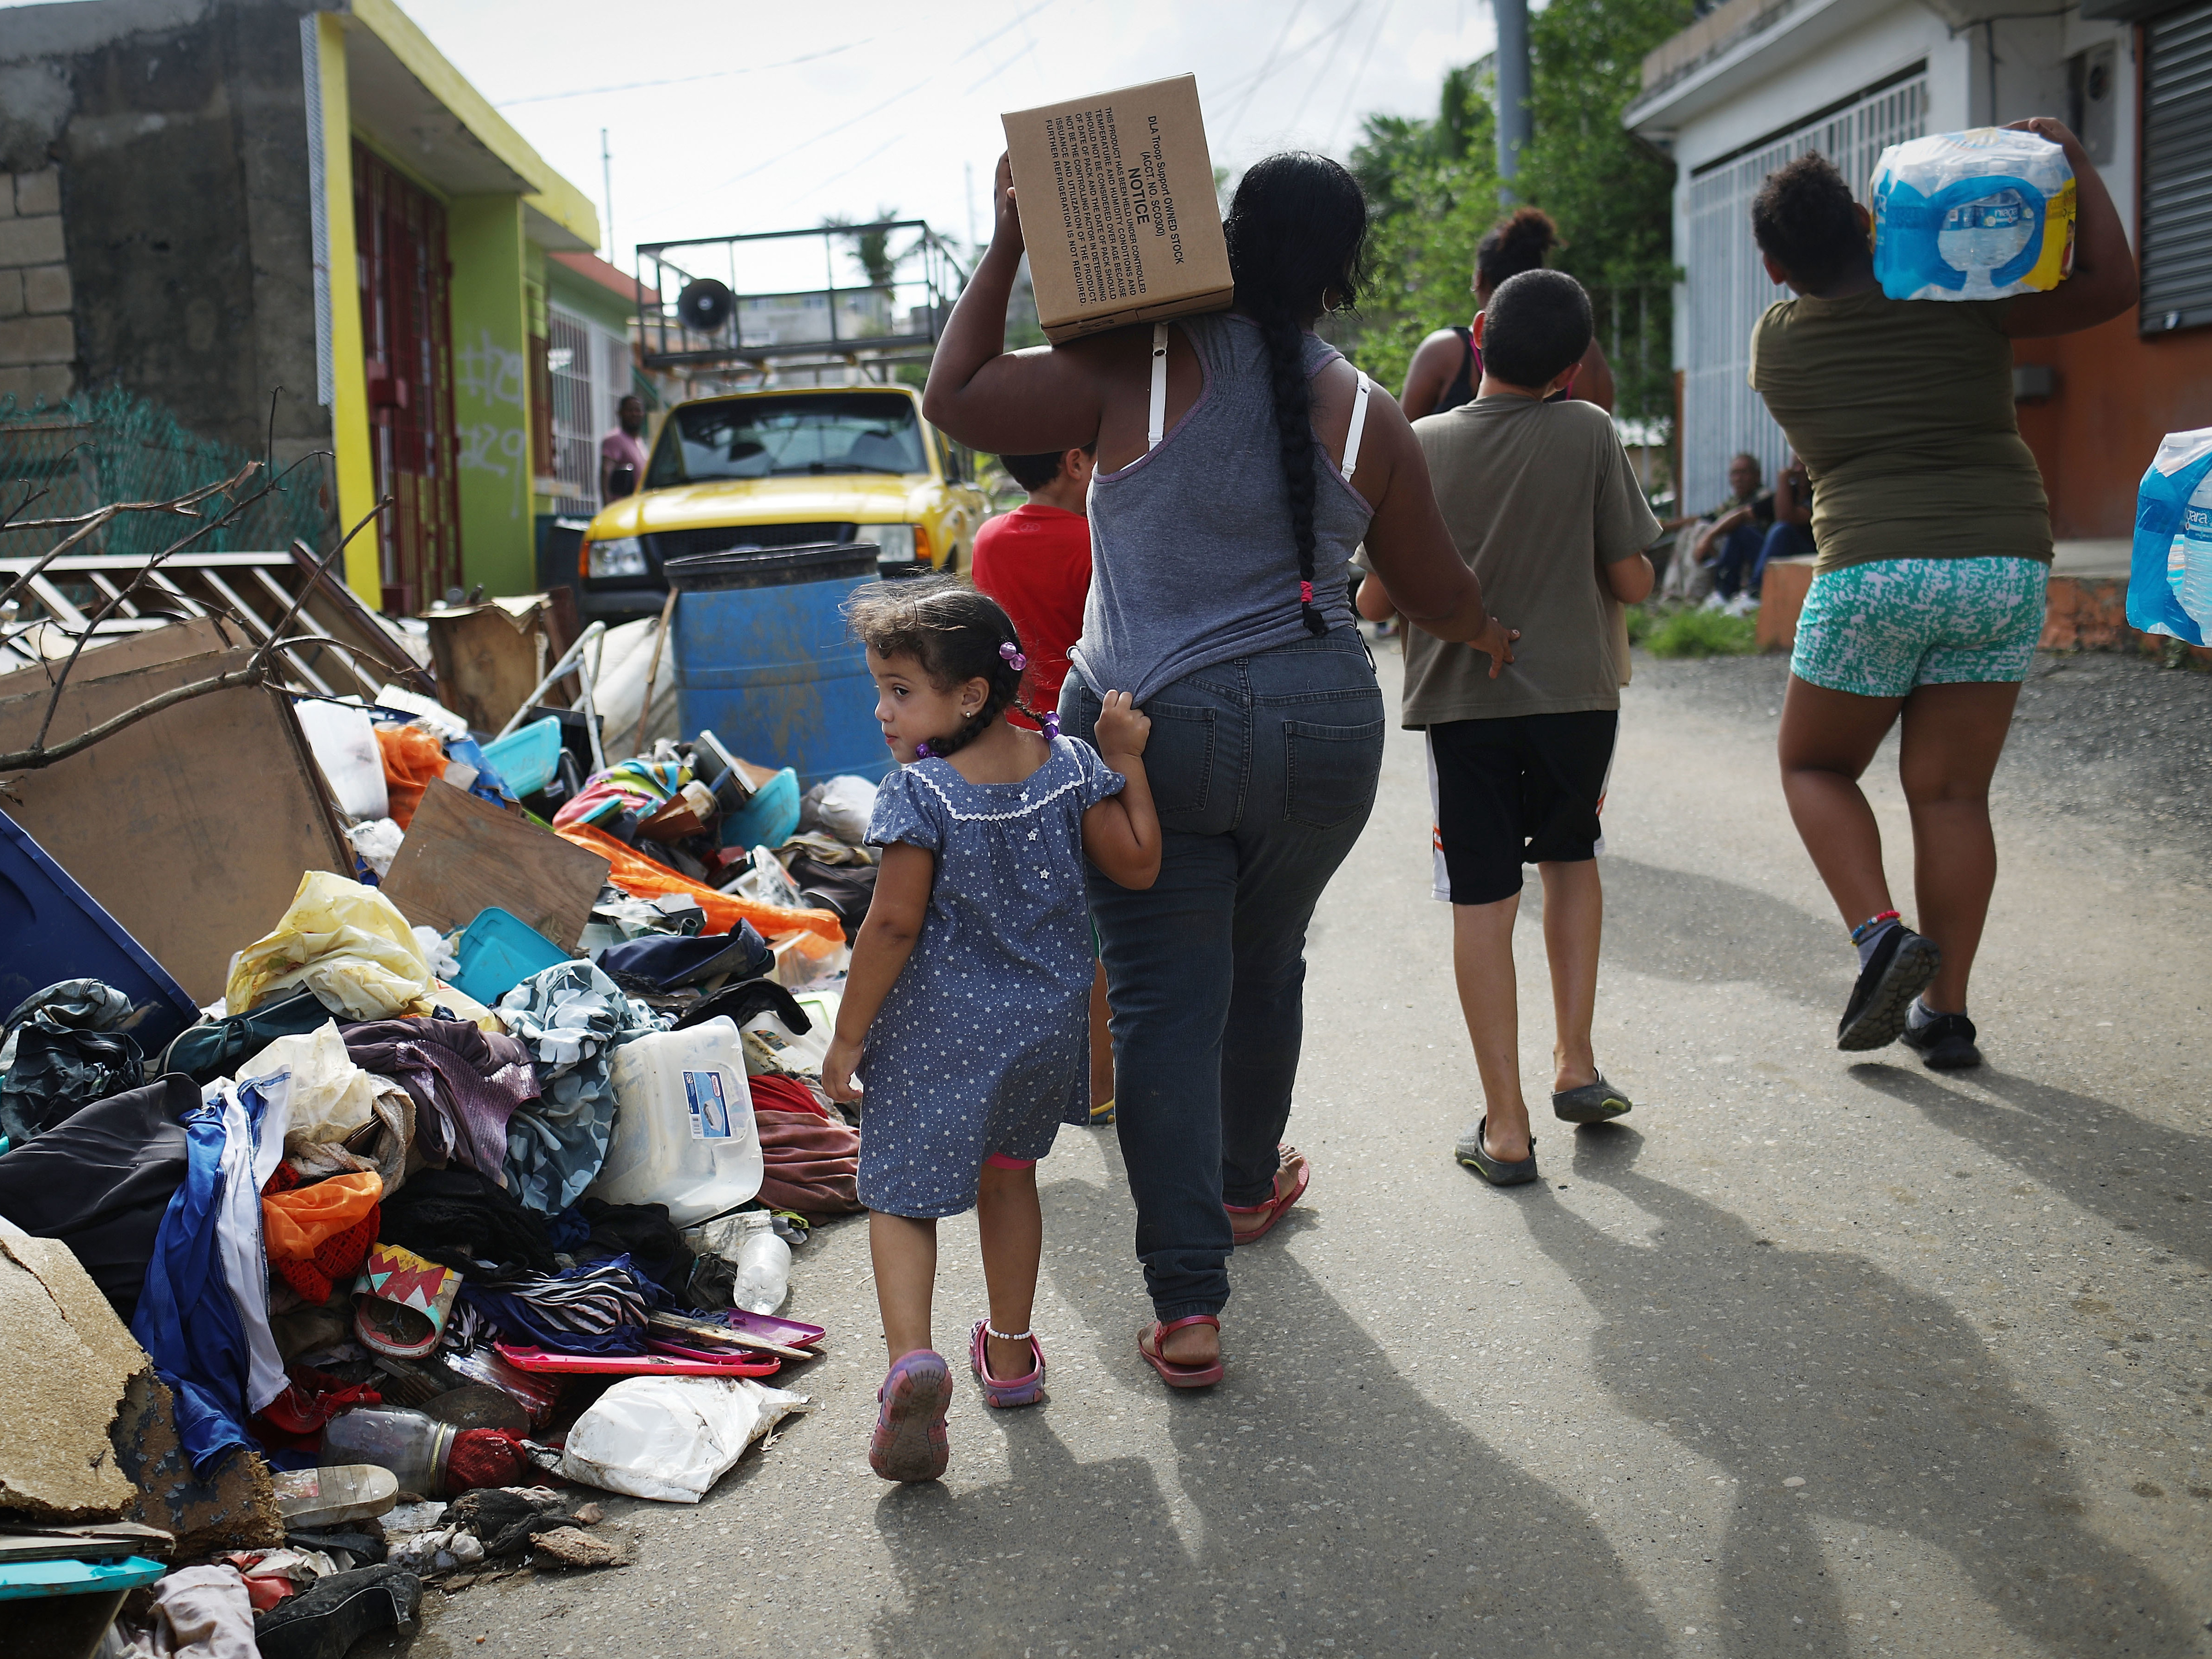 Puerto Rico Still in Peril as FEMA Scales Back Recovery Efforts